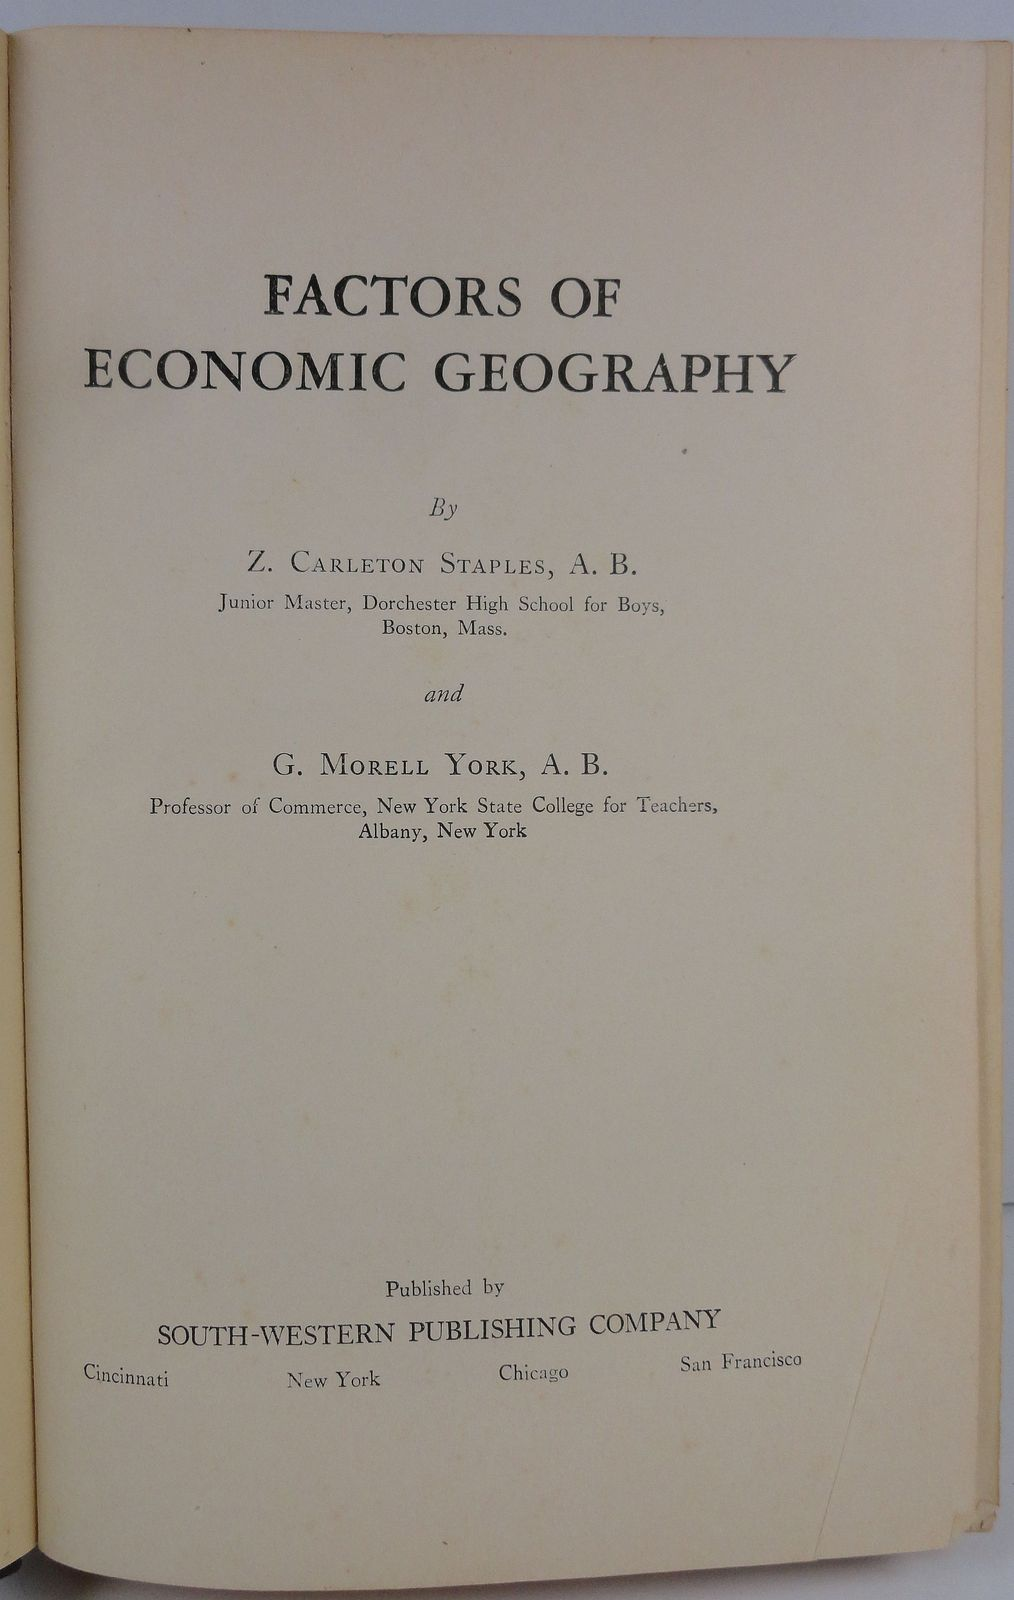 Factors of Economic Geography by Z. Carleton Staples 1928